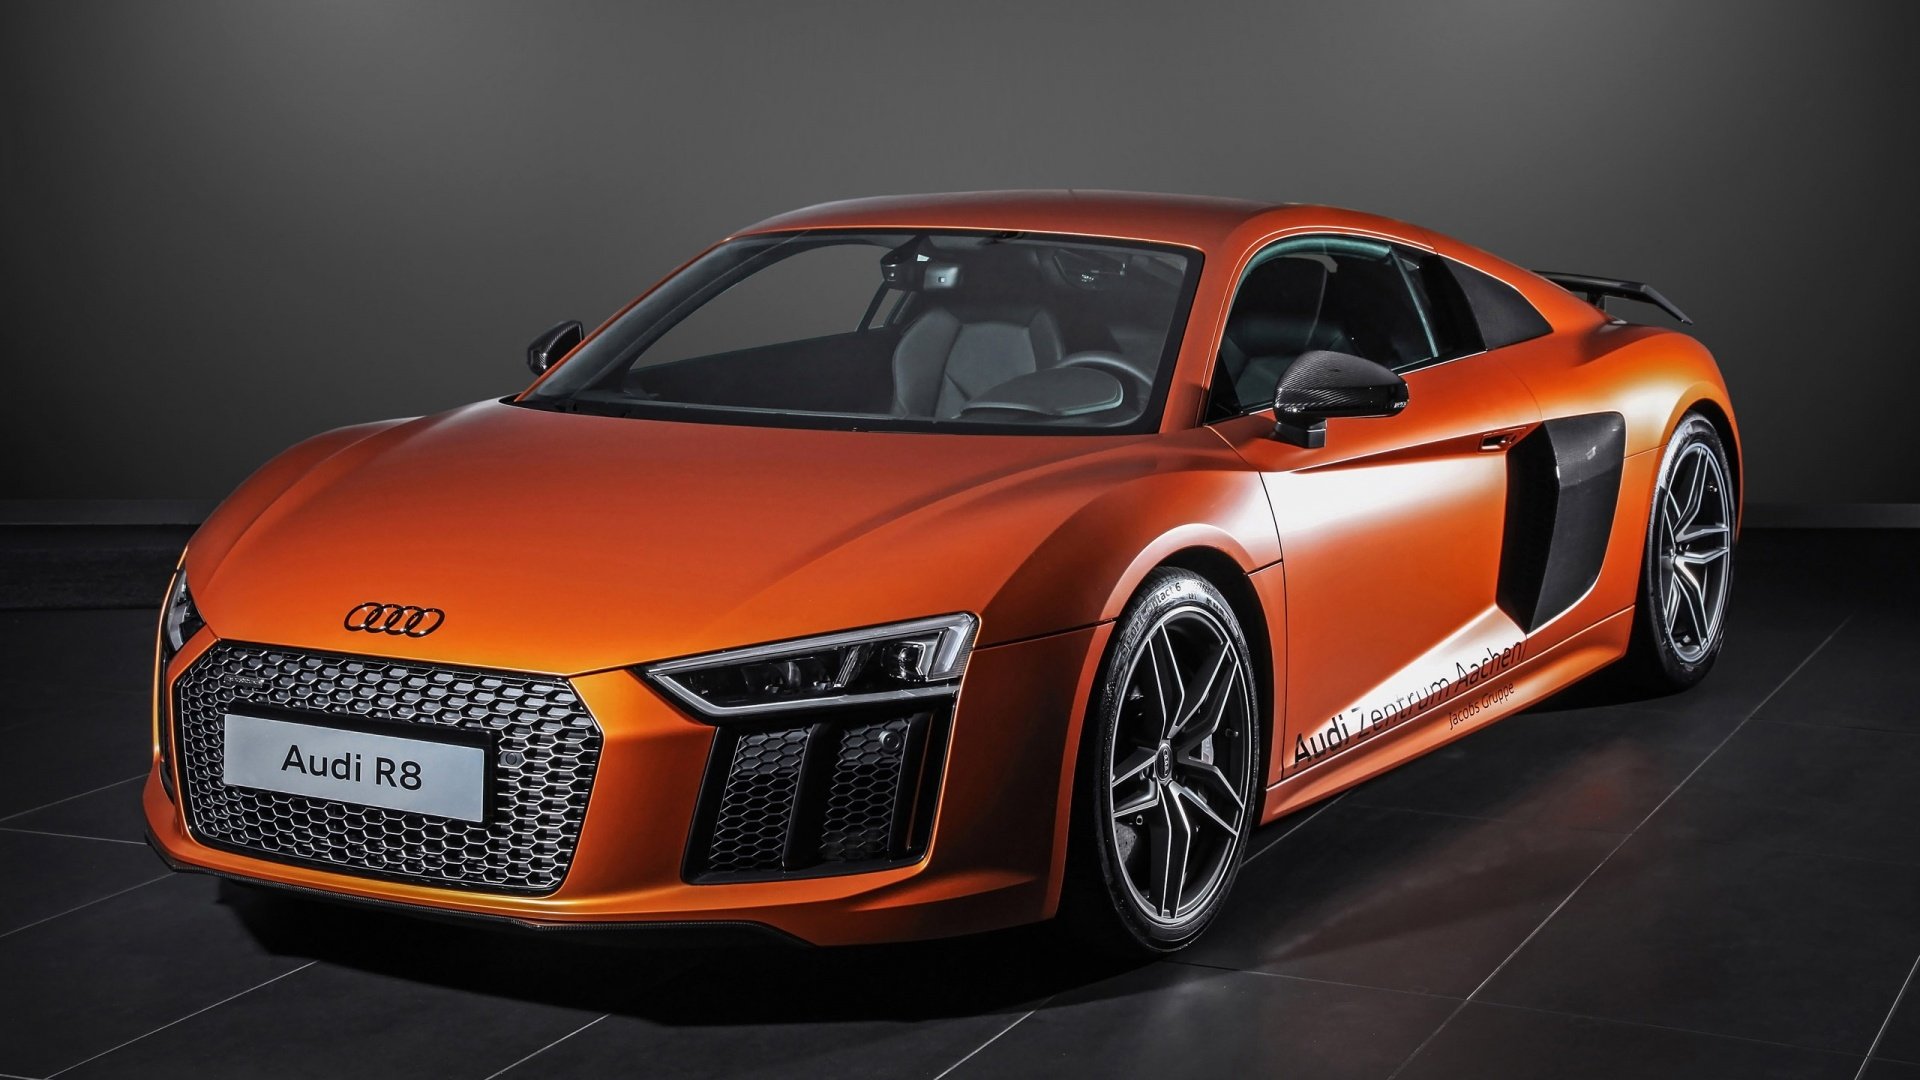 Hplusb Audi R8 2015 Wallpapers 1920x1080 432058